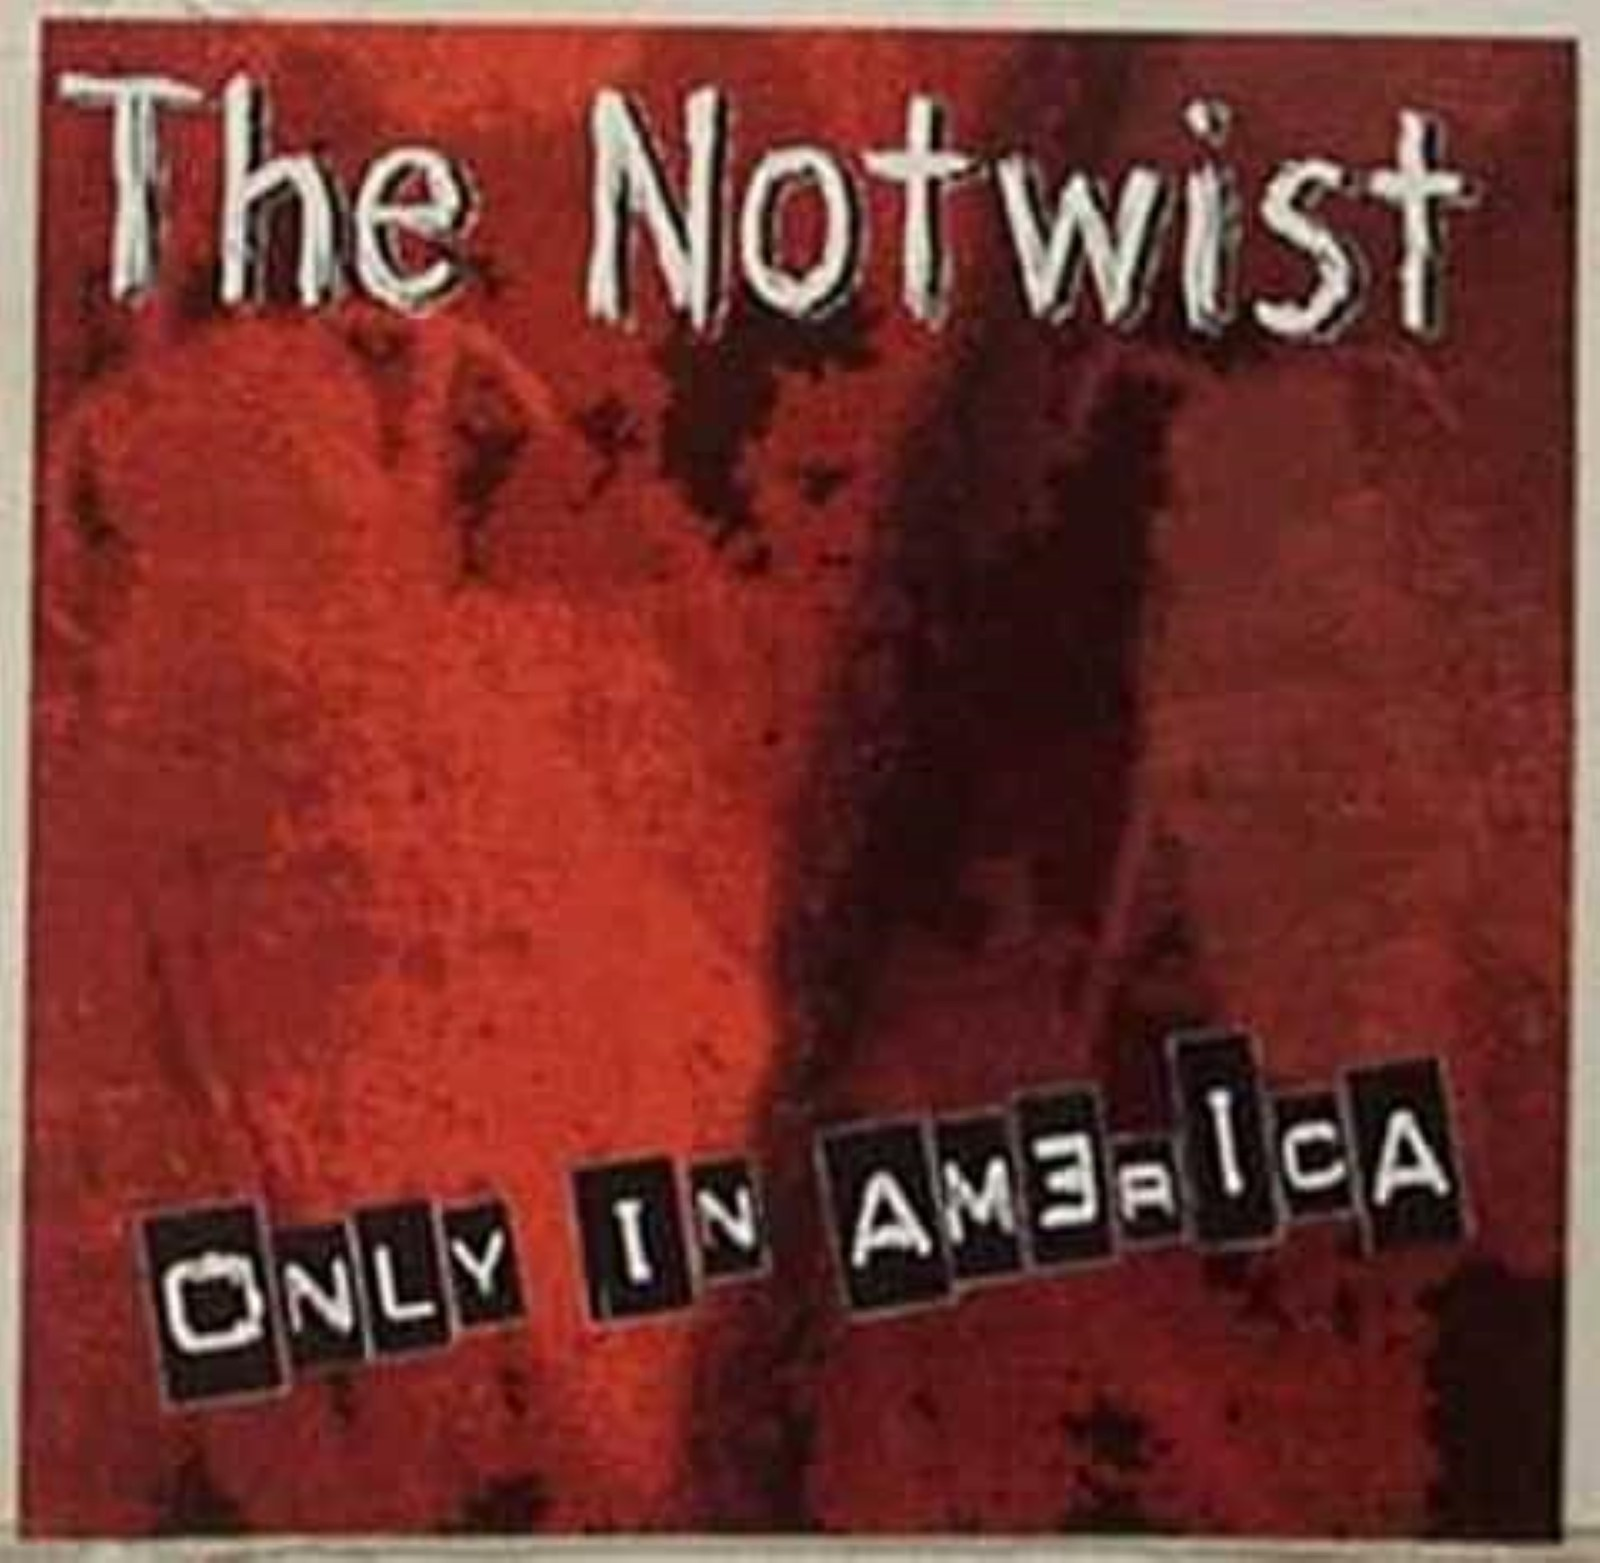 The Notwist - Only in America Cd